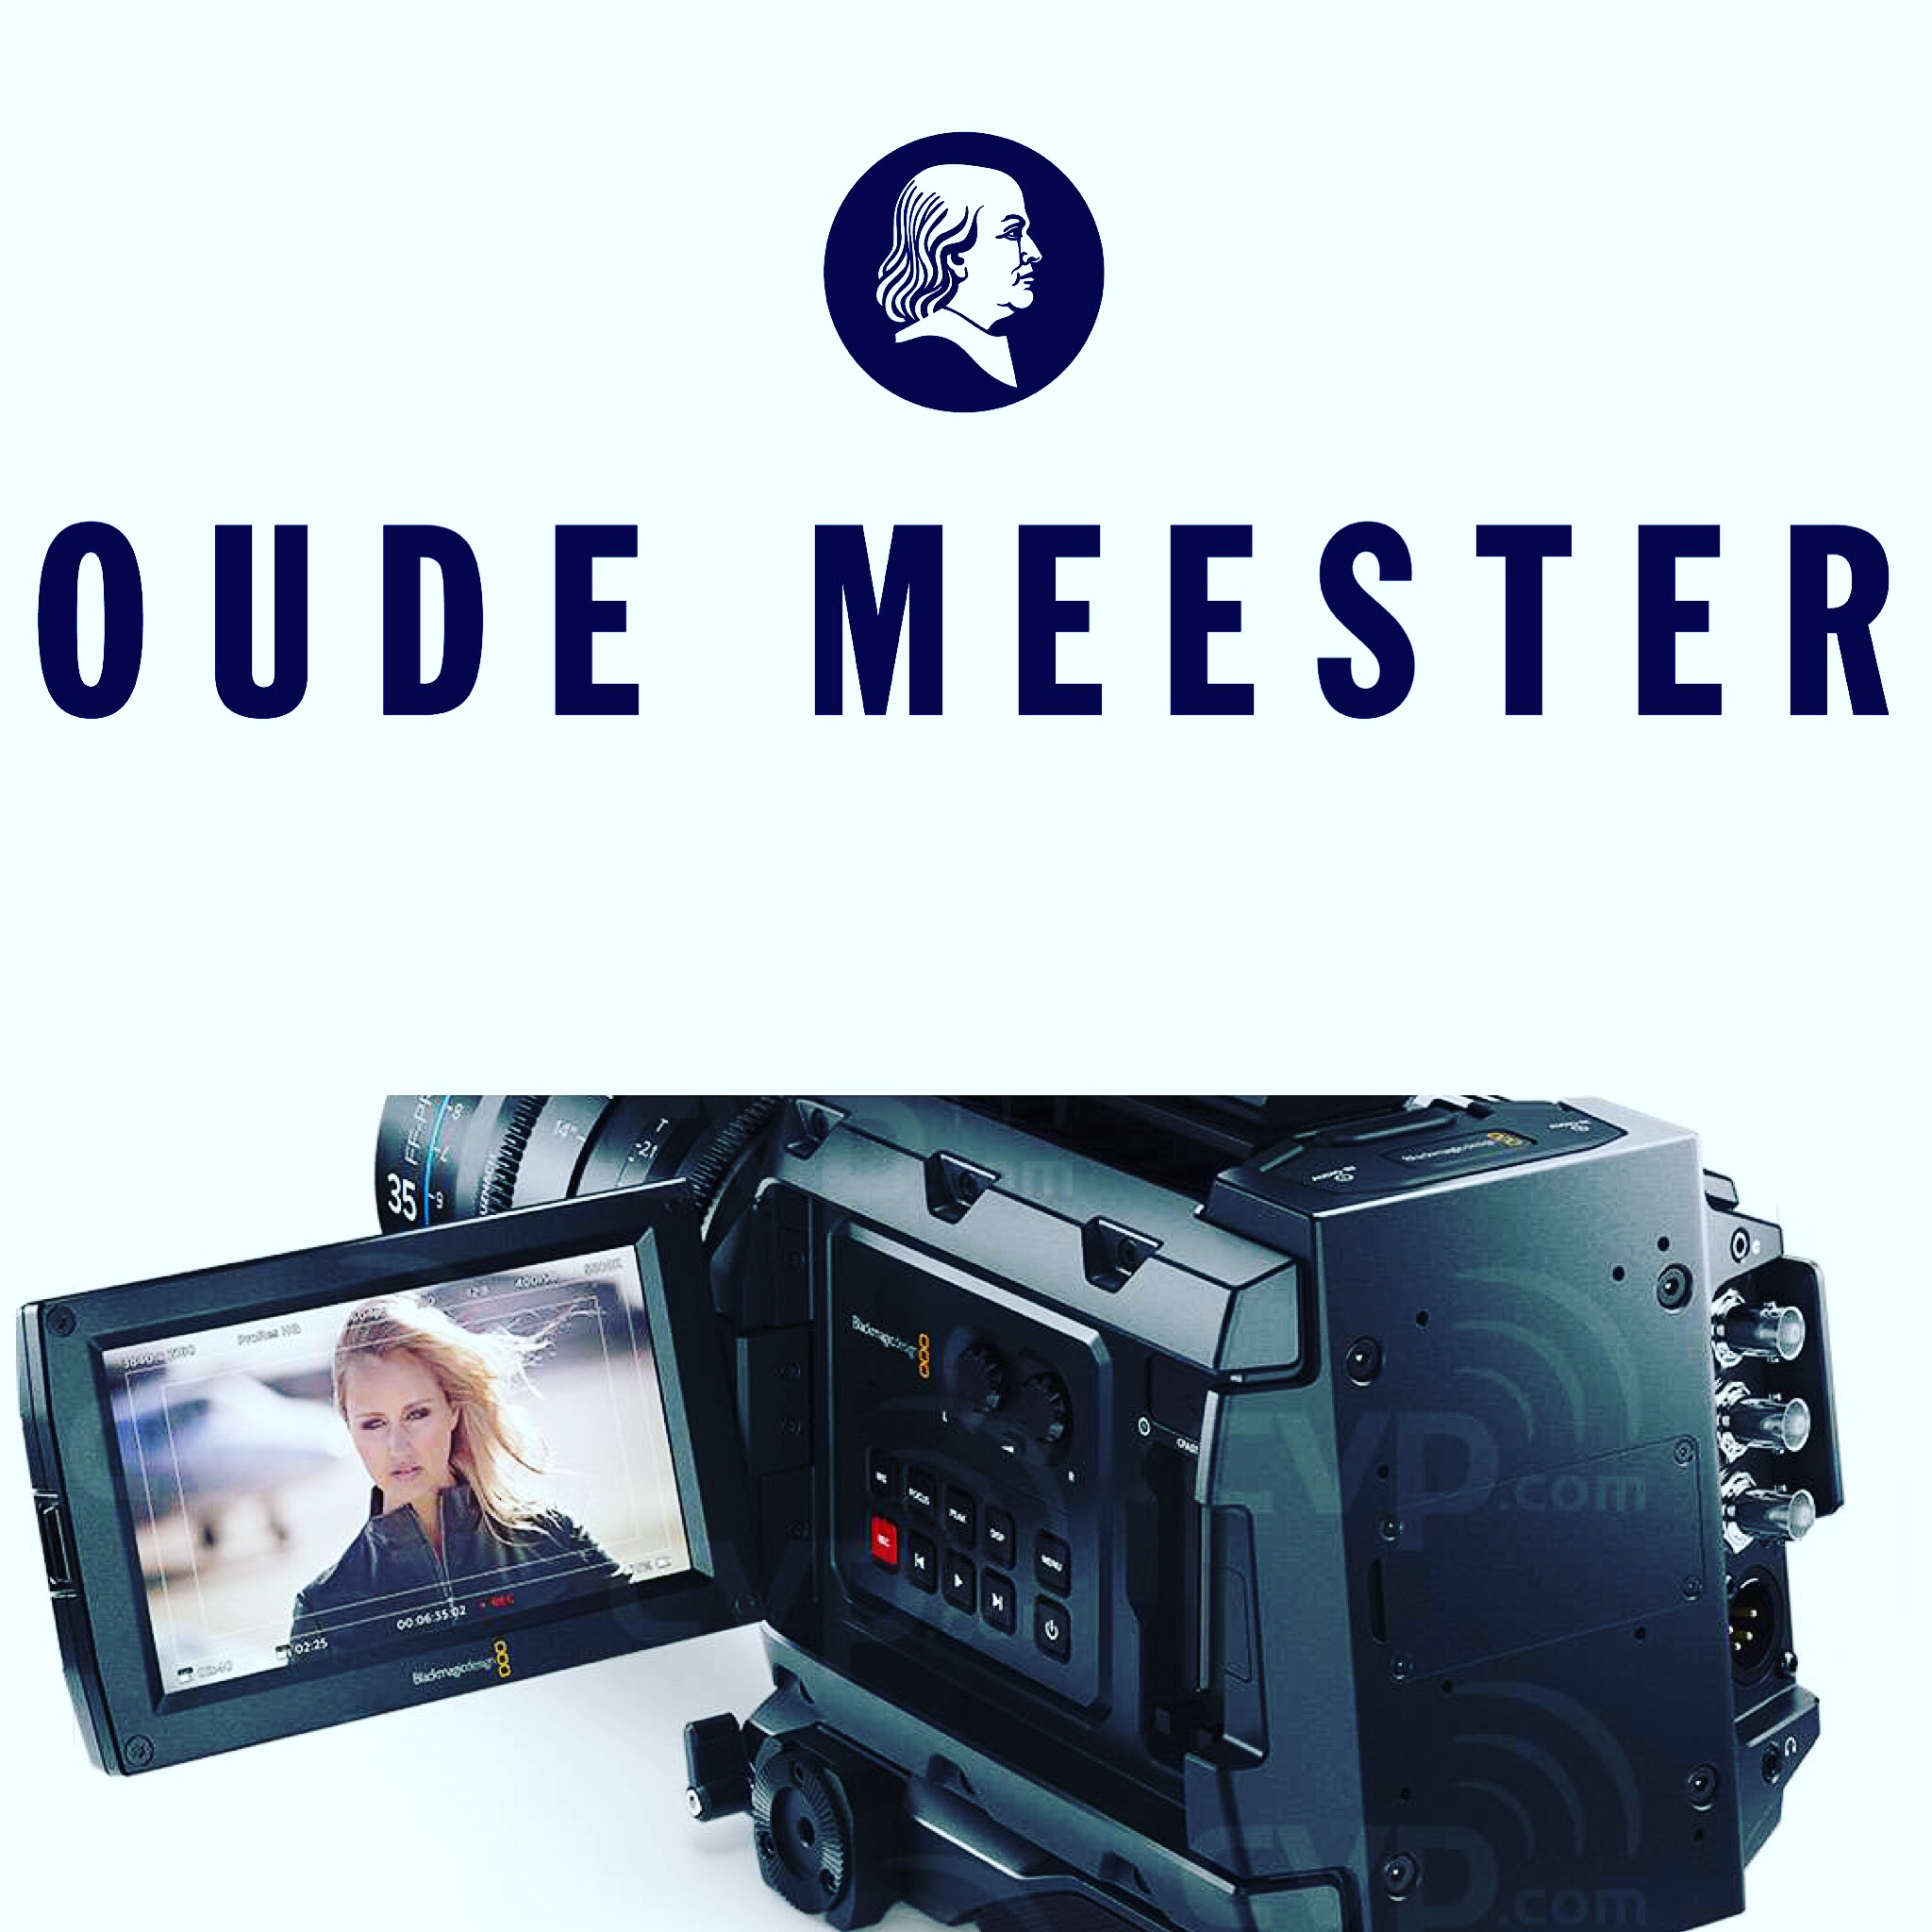 Oude Meester Announcement